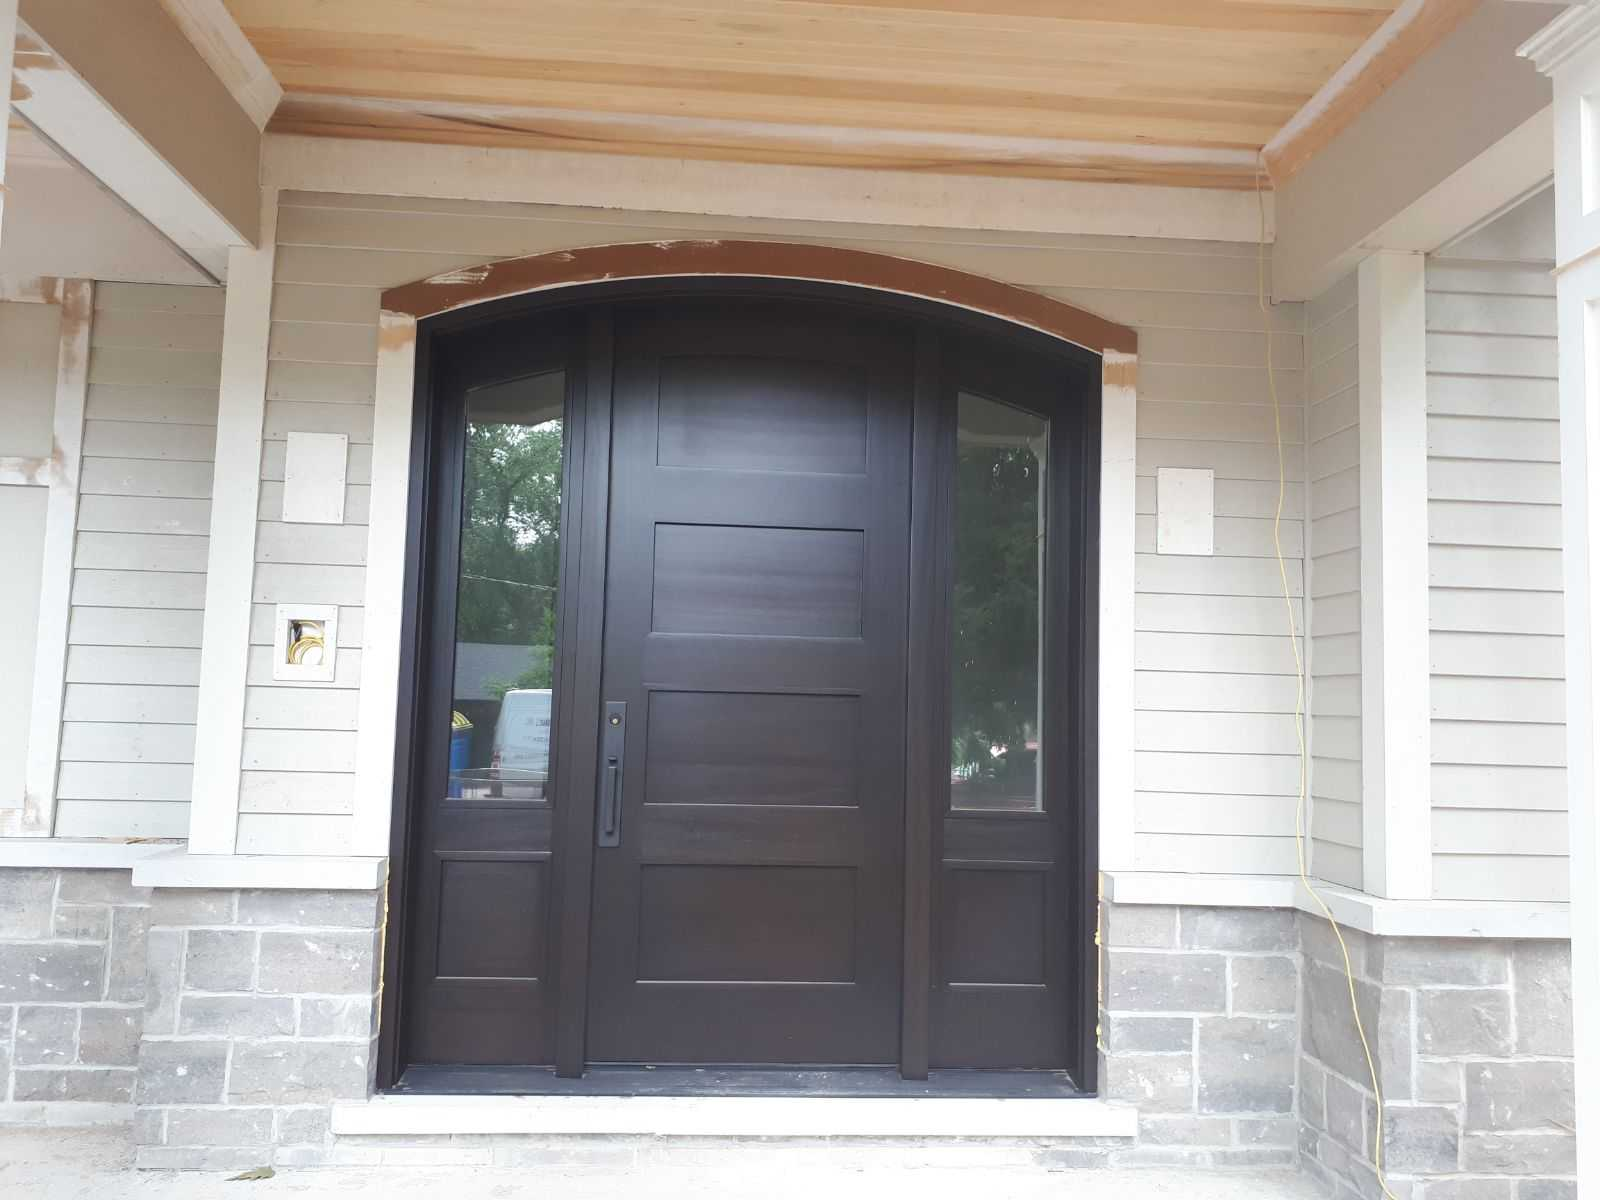 """""""Elegance is the only beauty that never fades"""" #SolidWood, #Doors, #Wood #Mahogany, #CustomMadeDoors, #EntryDoors.#DistinctiveLook, #FityourHome Made by #NorthwoodDoorsInc. Your best value and quality, #HandCraftedDoors. Every door #Manifactured by us has our corporate stamp - a testament to our dedication and passion in #Woodwork. Let #NorthwoodDoorsInc. add to your home's #CurbAppeal by enhancing the quality and beauty of your #EntryDoors. Visit our #Showroom to envision how one of our many #doors on display might look like at your #Home. Contact us today Tel. 416-253-2034, info@northwooddoors.com, www.northwooddoor.com — in Toronto, Ontario"""